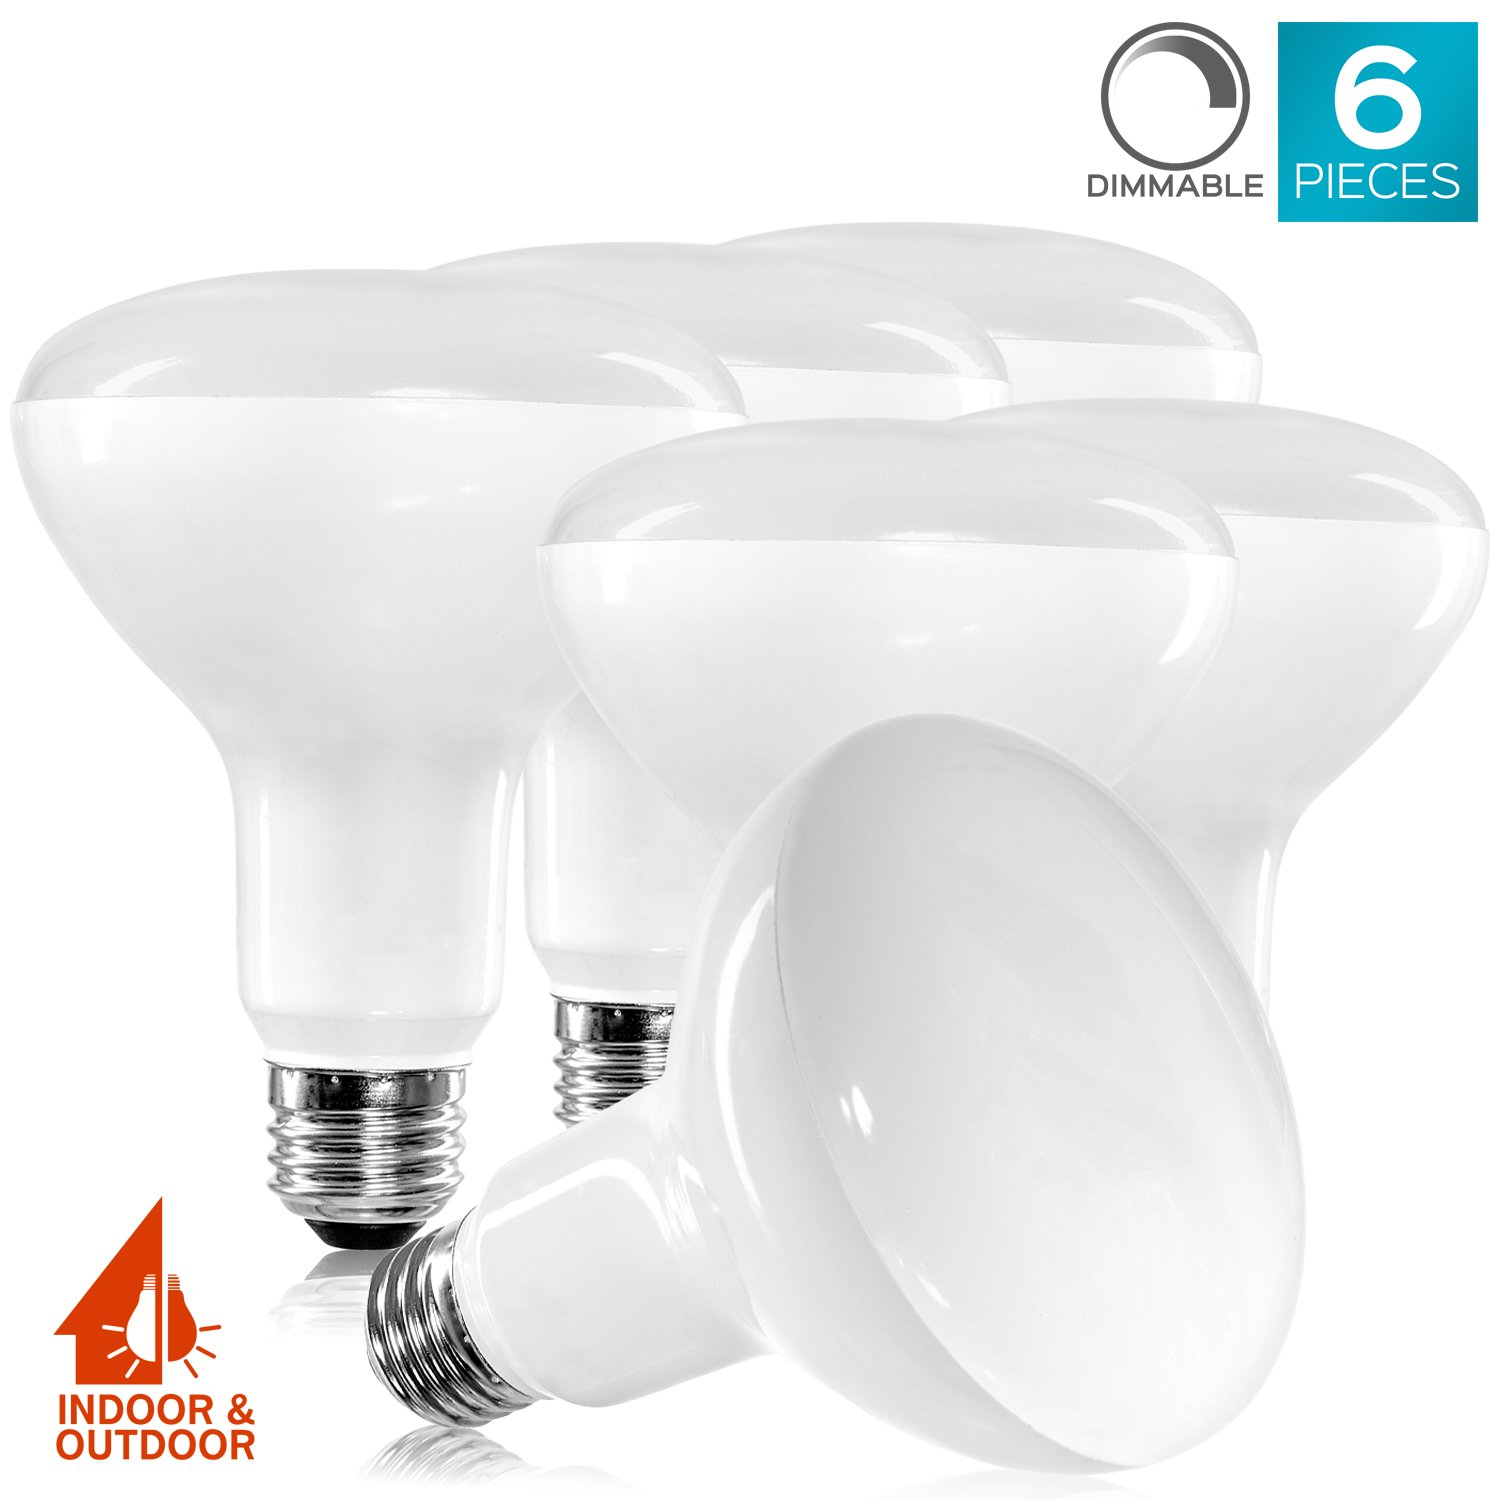 6-Pack BR30 LED Bulb, Luxrite, 65W Equivalent, 4000K Cool White, Dimmable, 650 Lumens, LED Flood Light Bulbs, 9W, E26 Medium Base, Damp Rated, Indoor/Outdoor - Living Room, Kitchen, Recessed Lighting